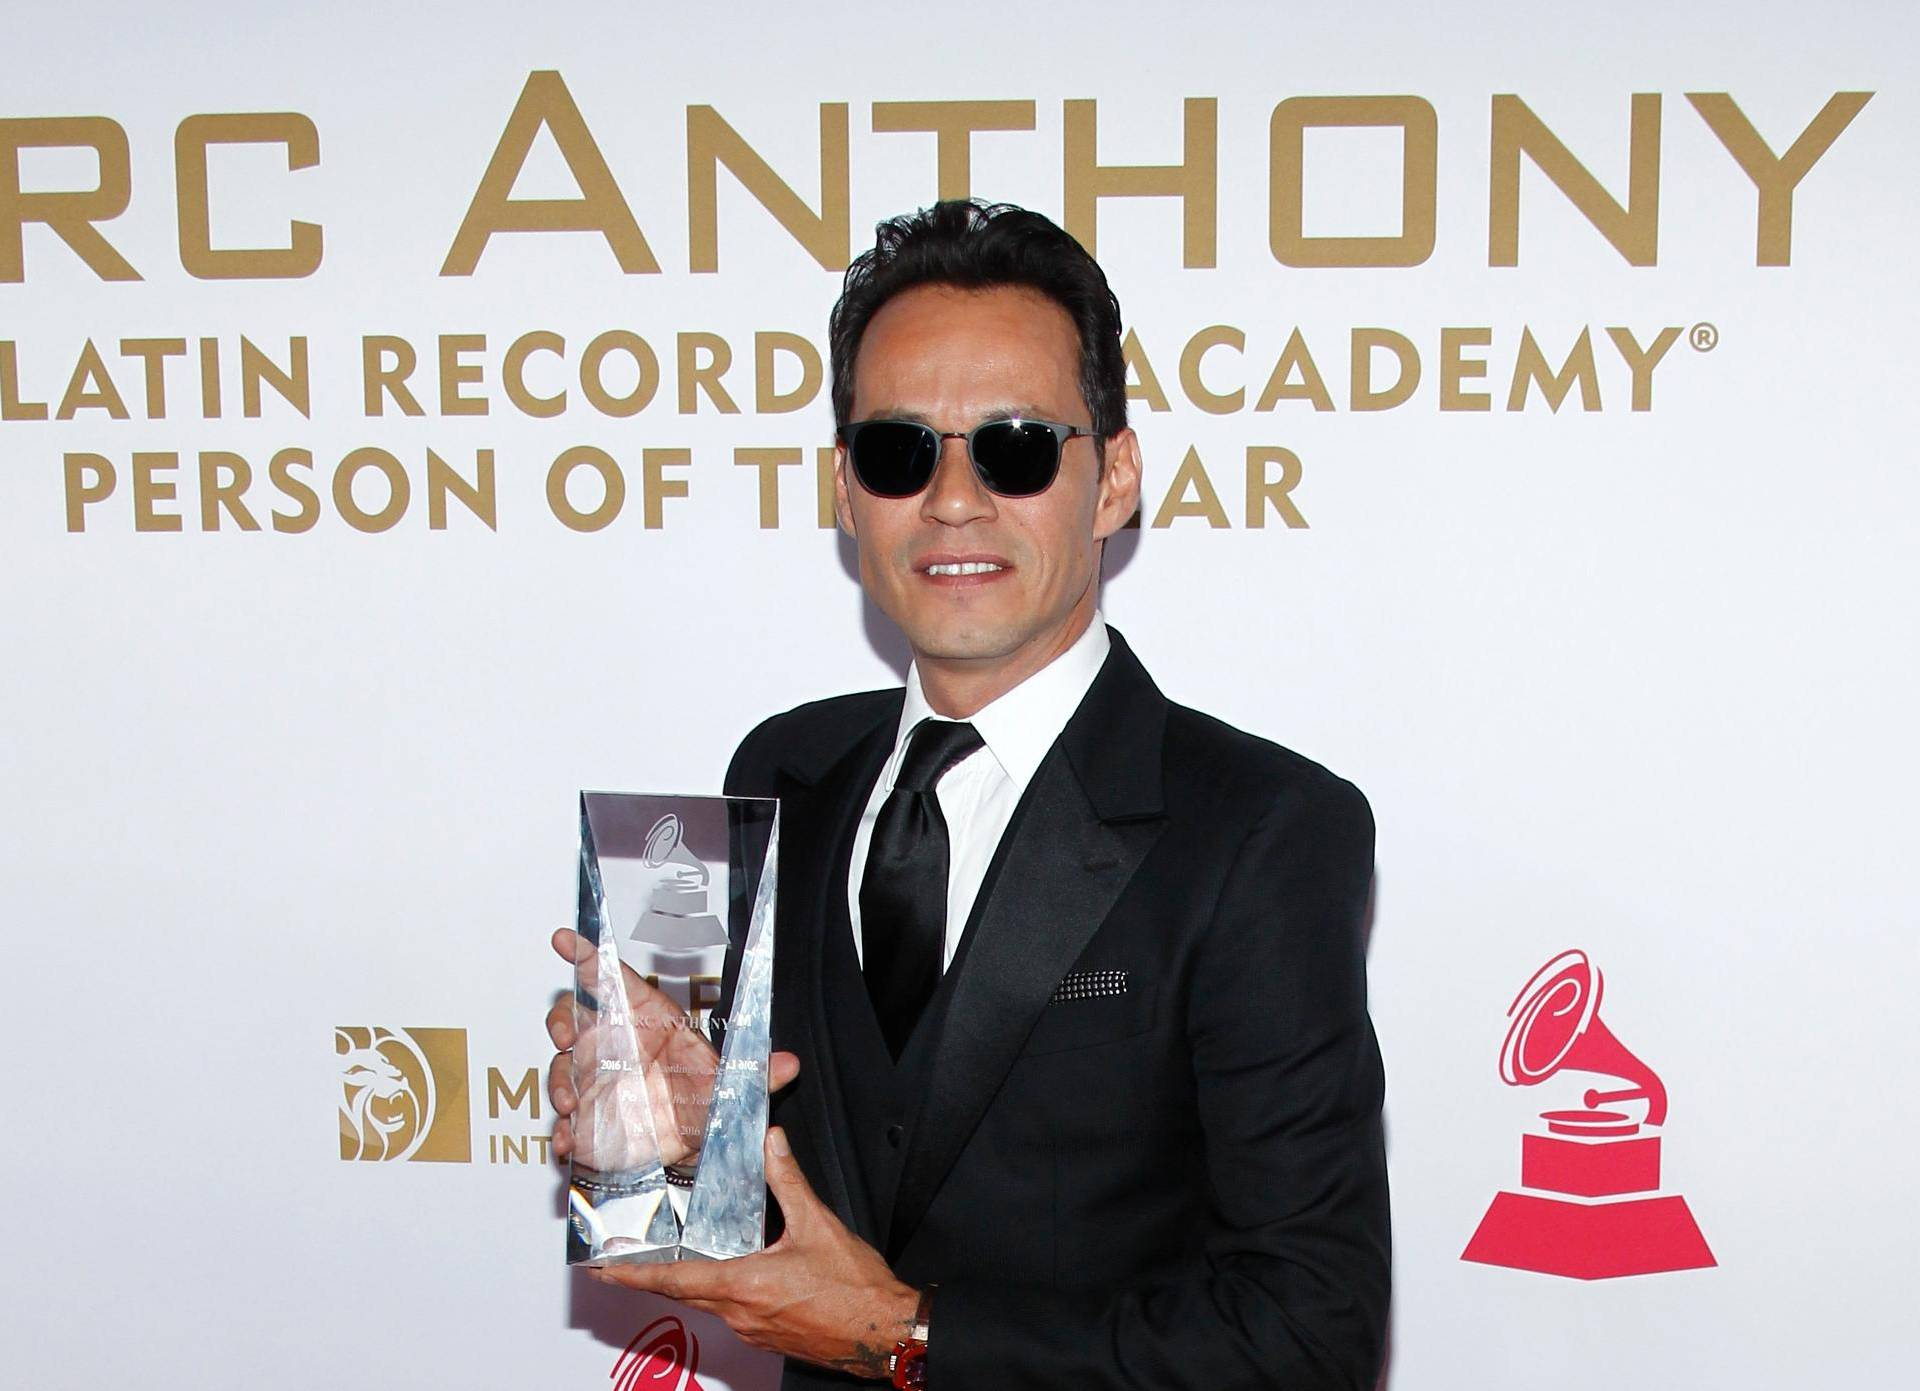 2016 Latin Grammy Awards - Person of the Year - Arrivals